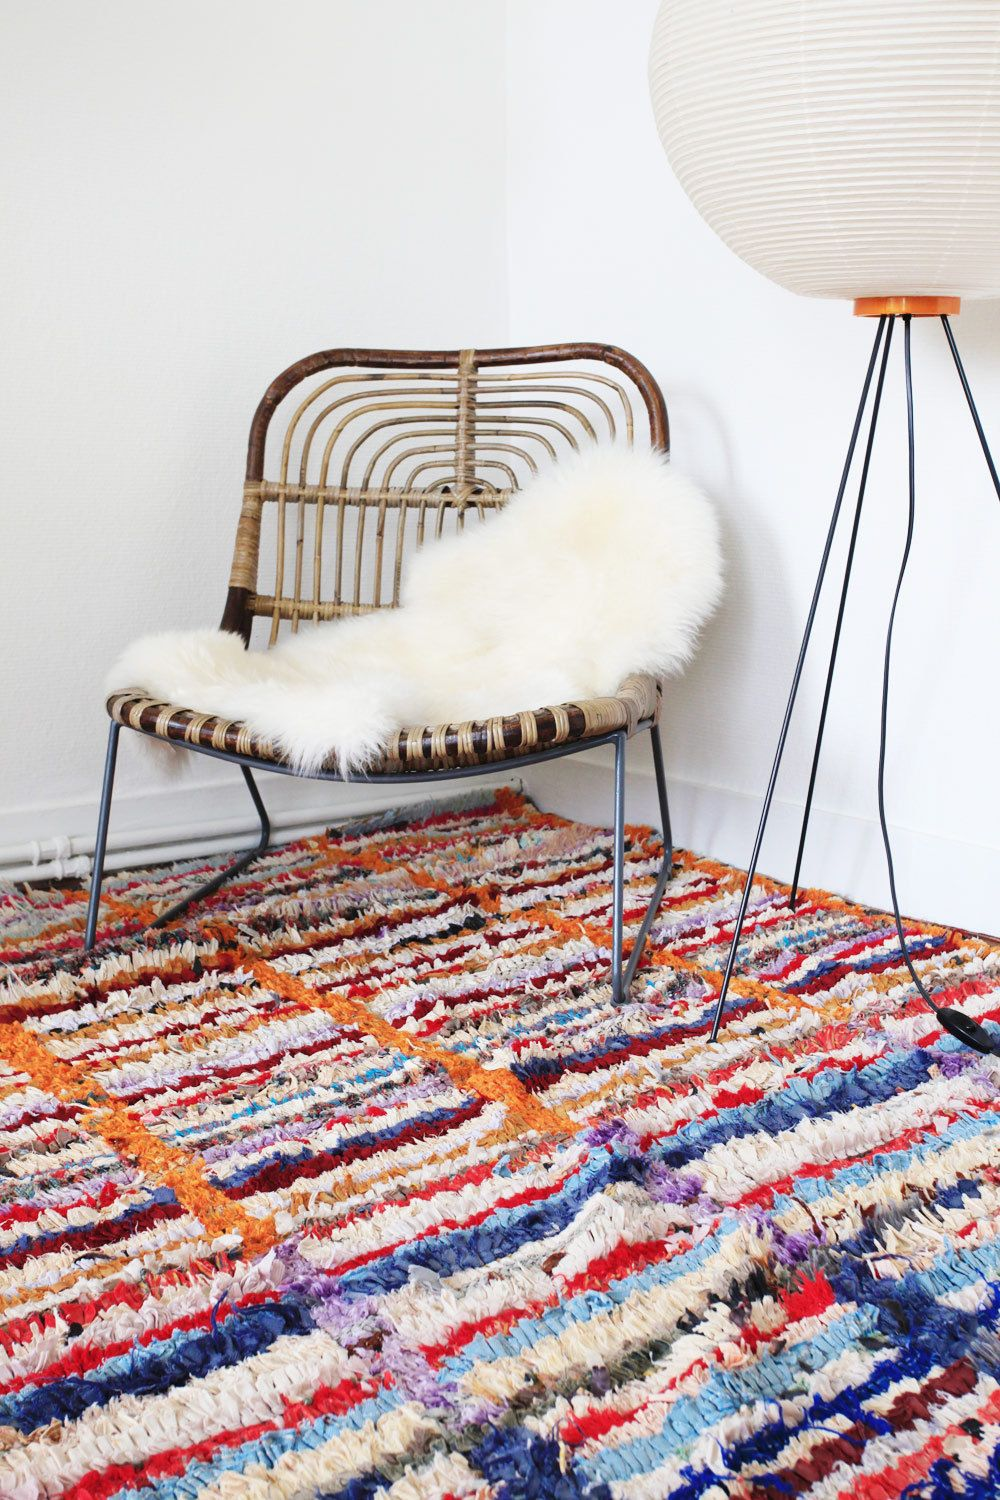 boucherouite vintage rug azilal berber colorful geometric stripes boho ethnic soft. Black Bedroom Furniture Sets. Home Design Ideas